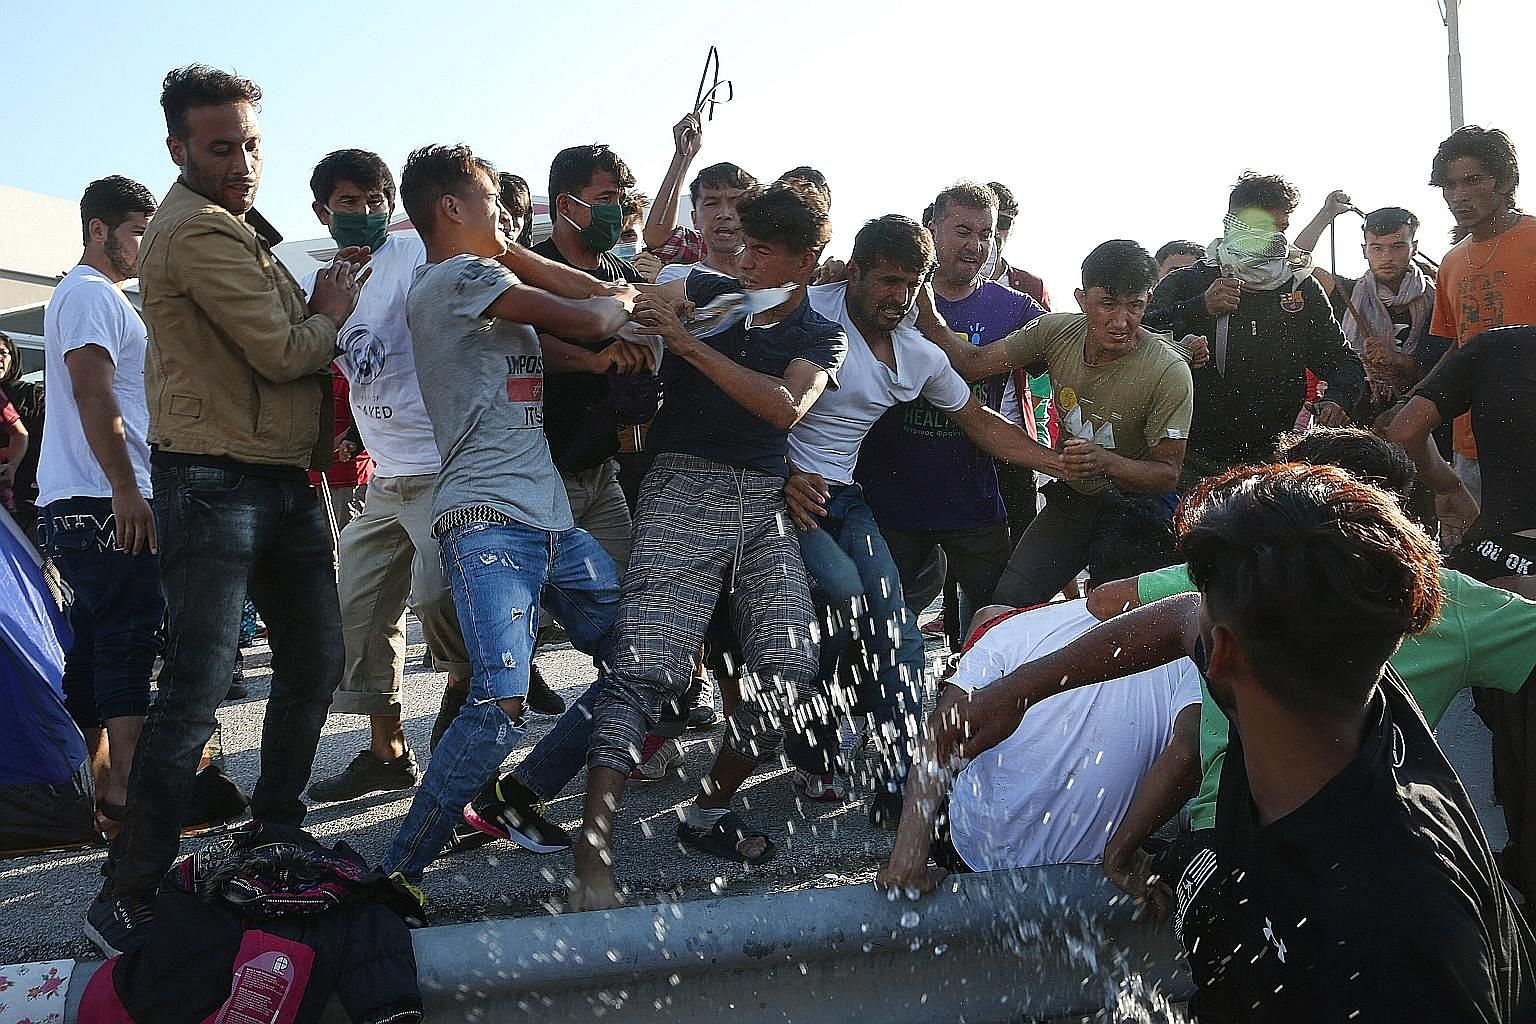 Asylum seekers tussling over a mobile charger near the razed Moria refugee camp in Greece on Wednesday. The camp, with its poor living conditions, had hosted more than 12,000 migrants, four times its stated capacity.